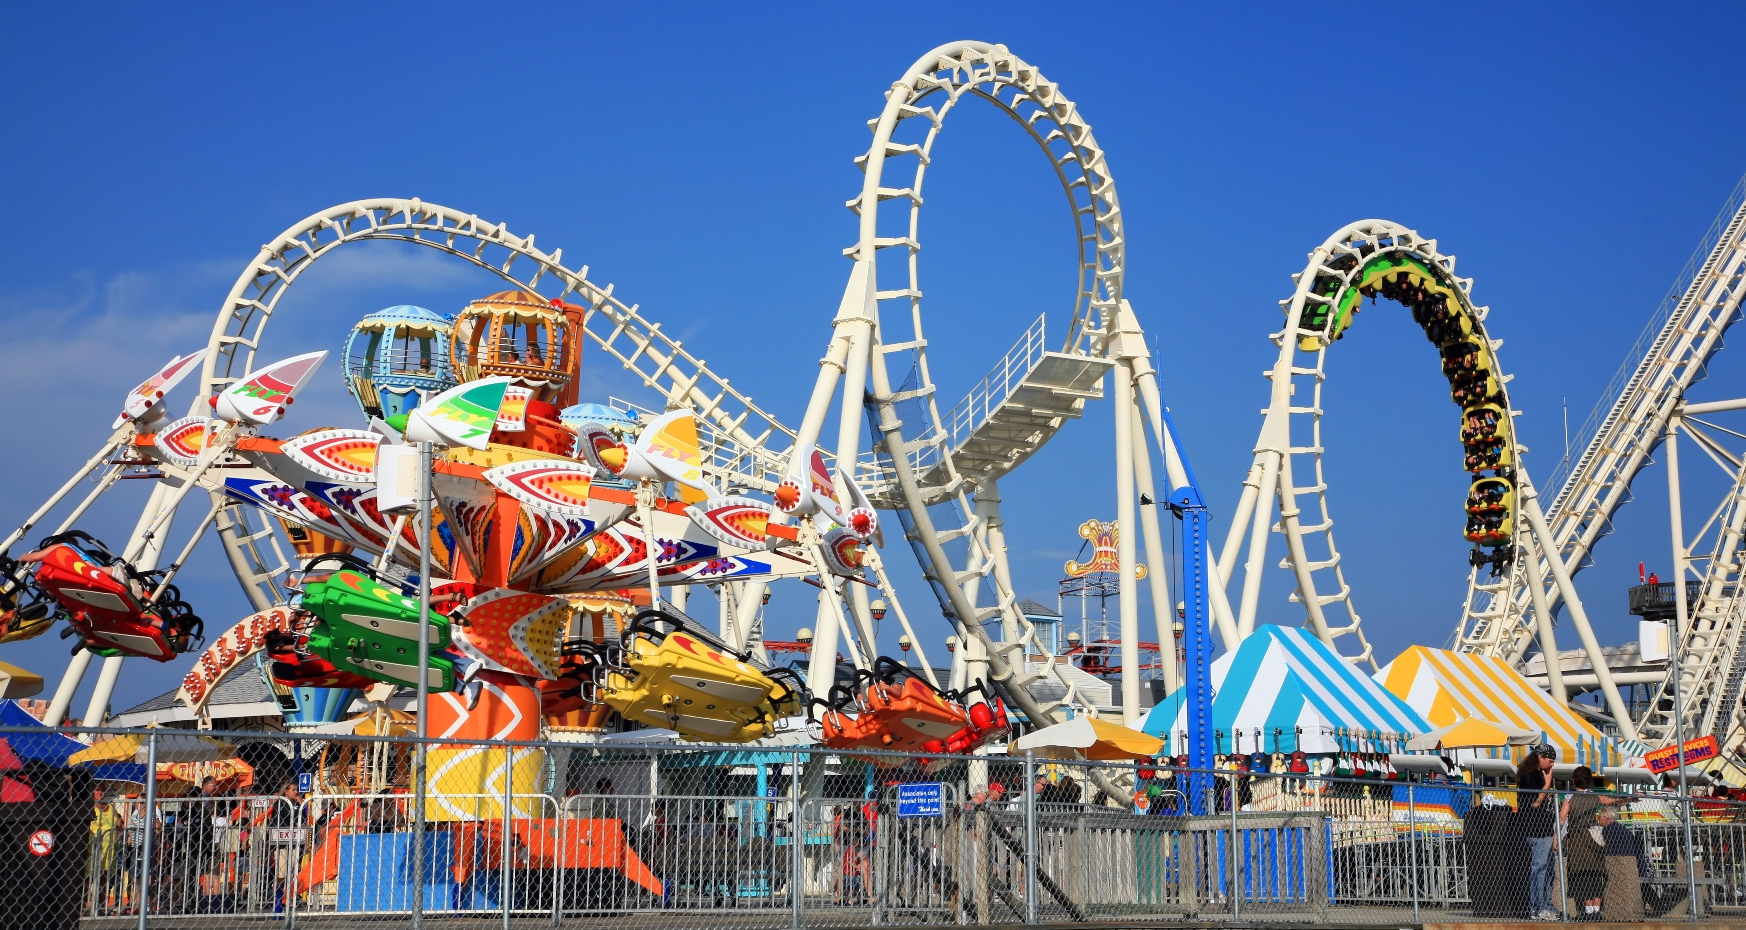 an amazing experience of enjoying the rides at the amusement park Visiting this historical attraction is practically a birthright the oldest amusement park in america is right here in connecticut and it's amazing.